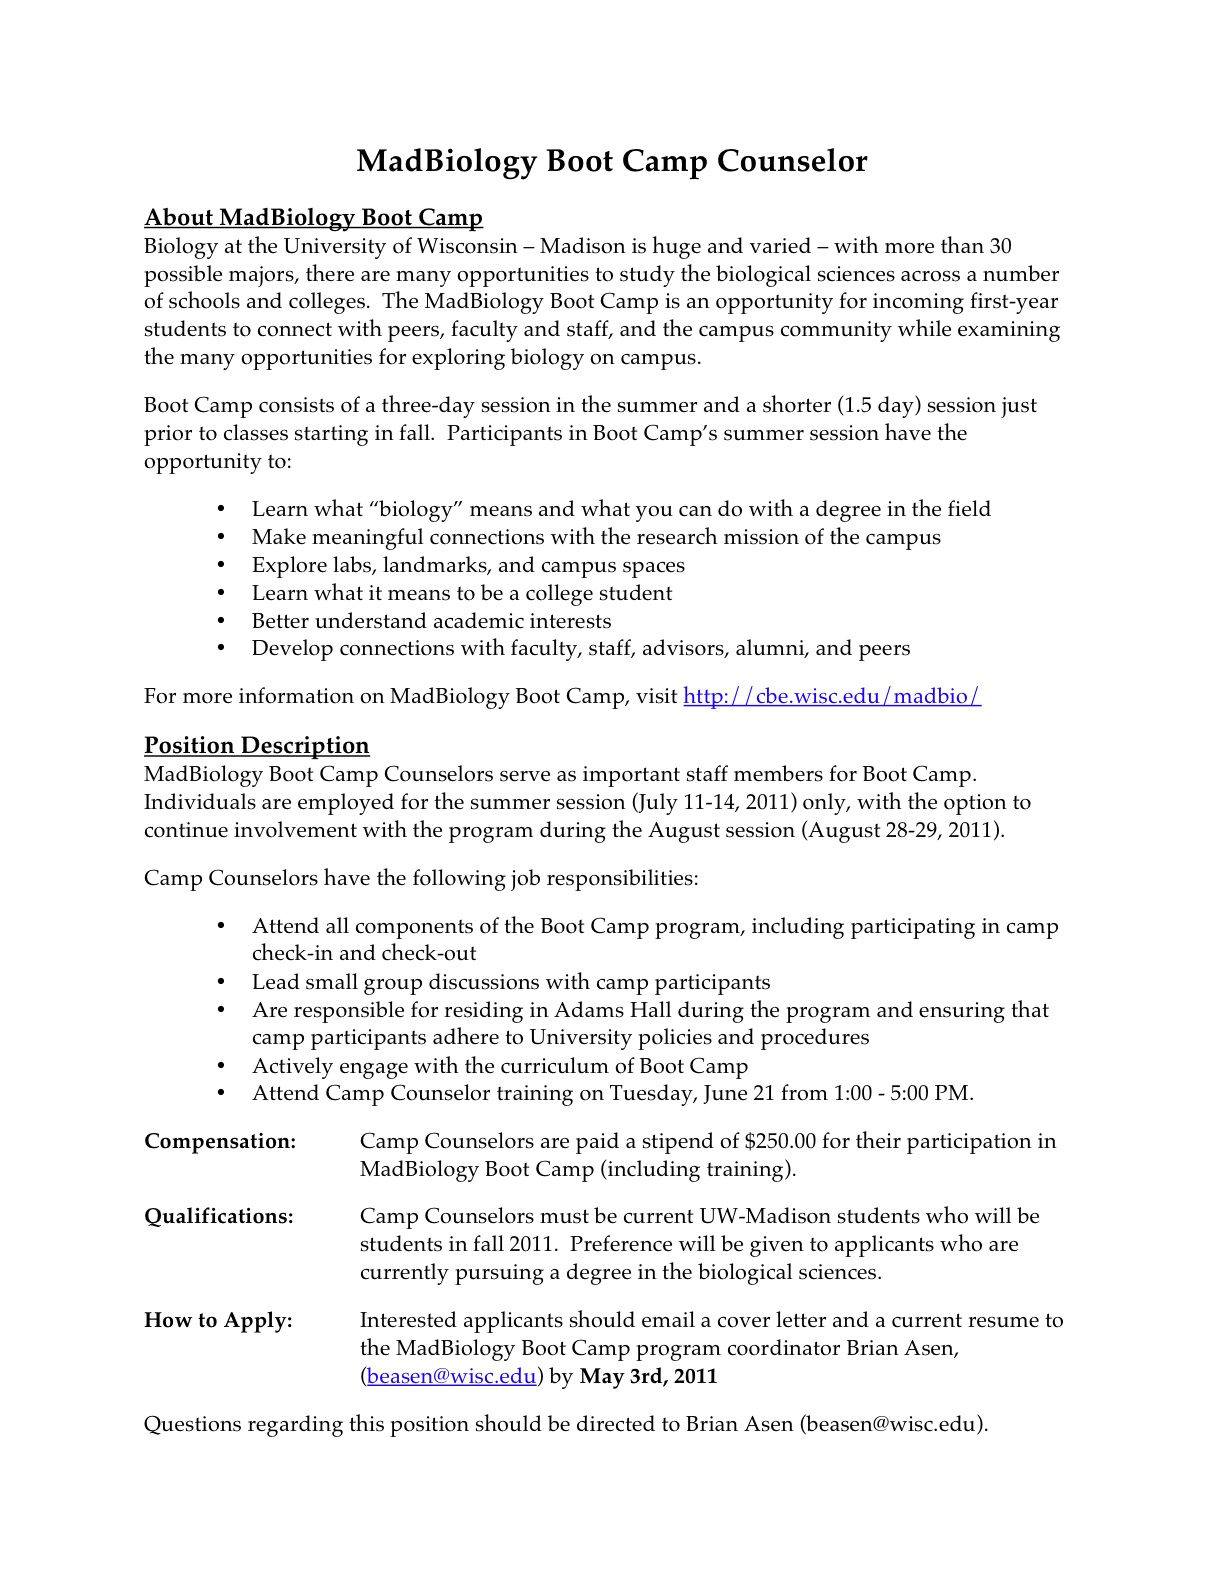 Summer Camp Letter to Parents Template - Responsibilities Of A Camp Counselor for Resume Acurnamedia